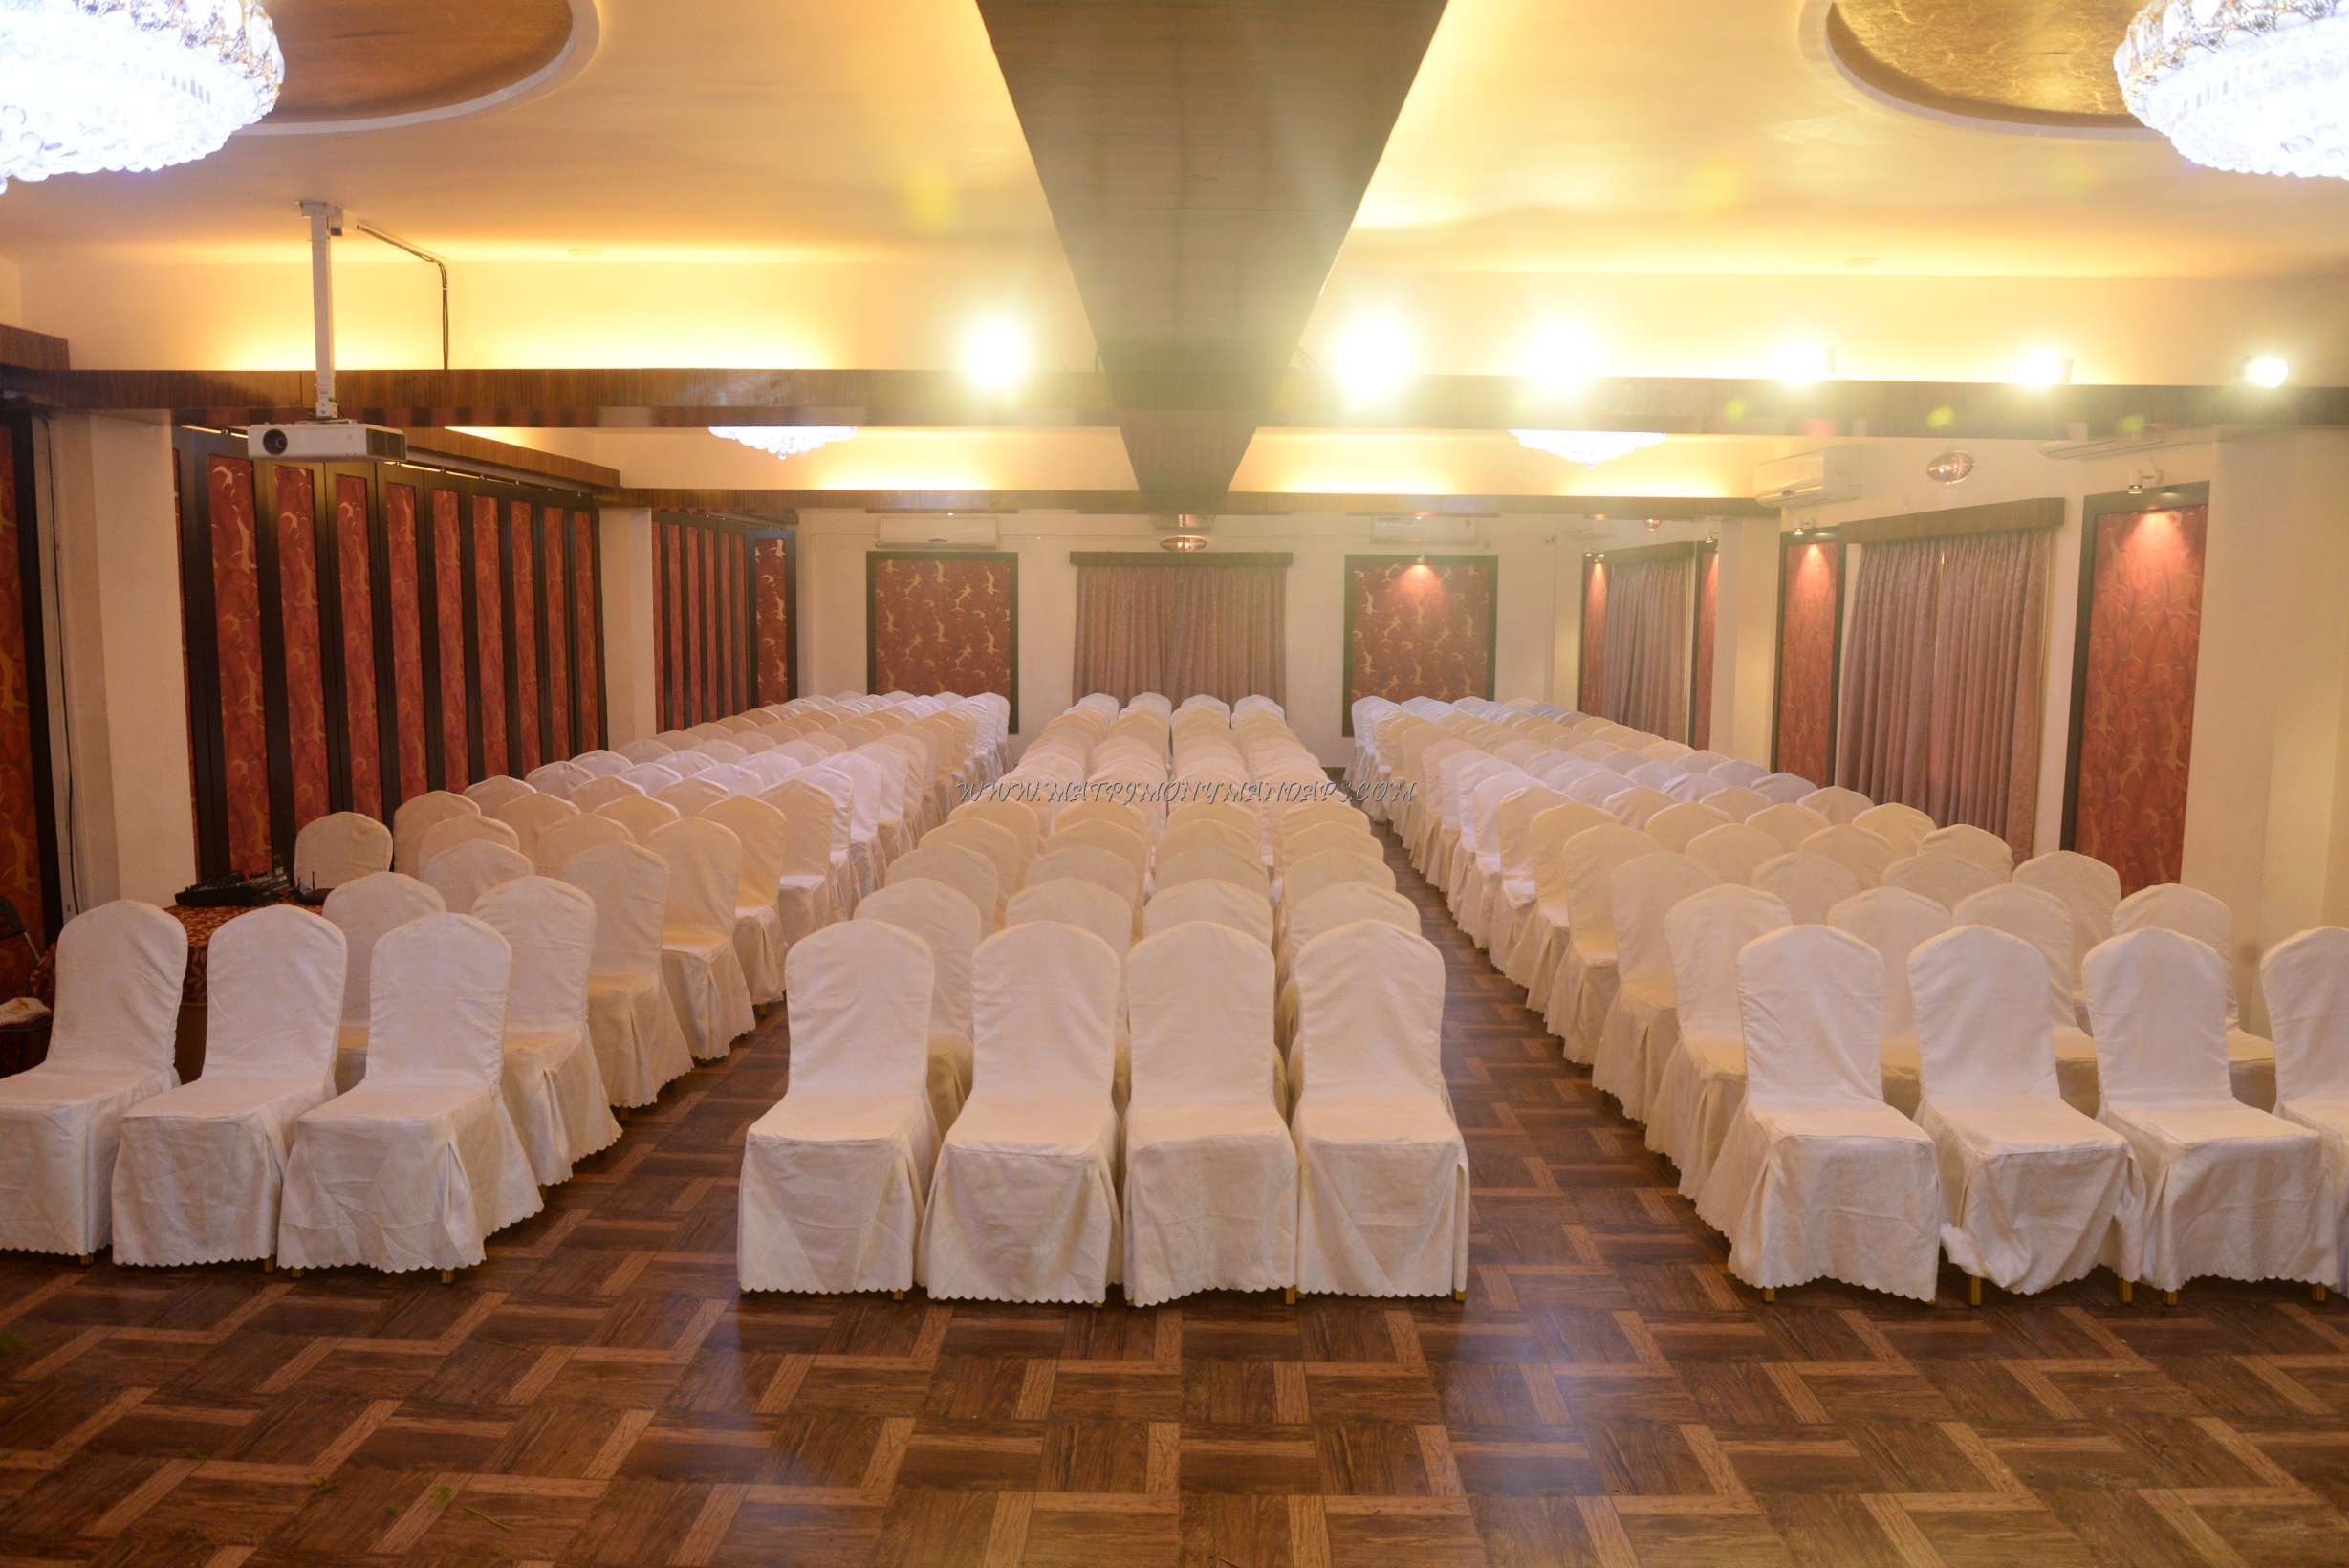 Find the availability of the Sigaram Banquet Hall (A/C) in Vadapalani, Chennai and avail special offers